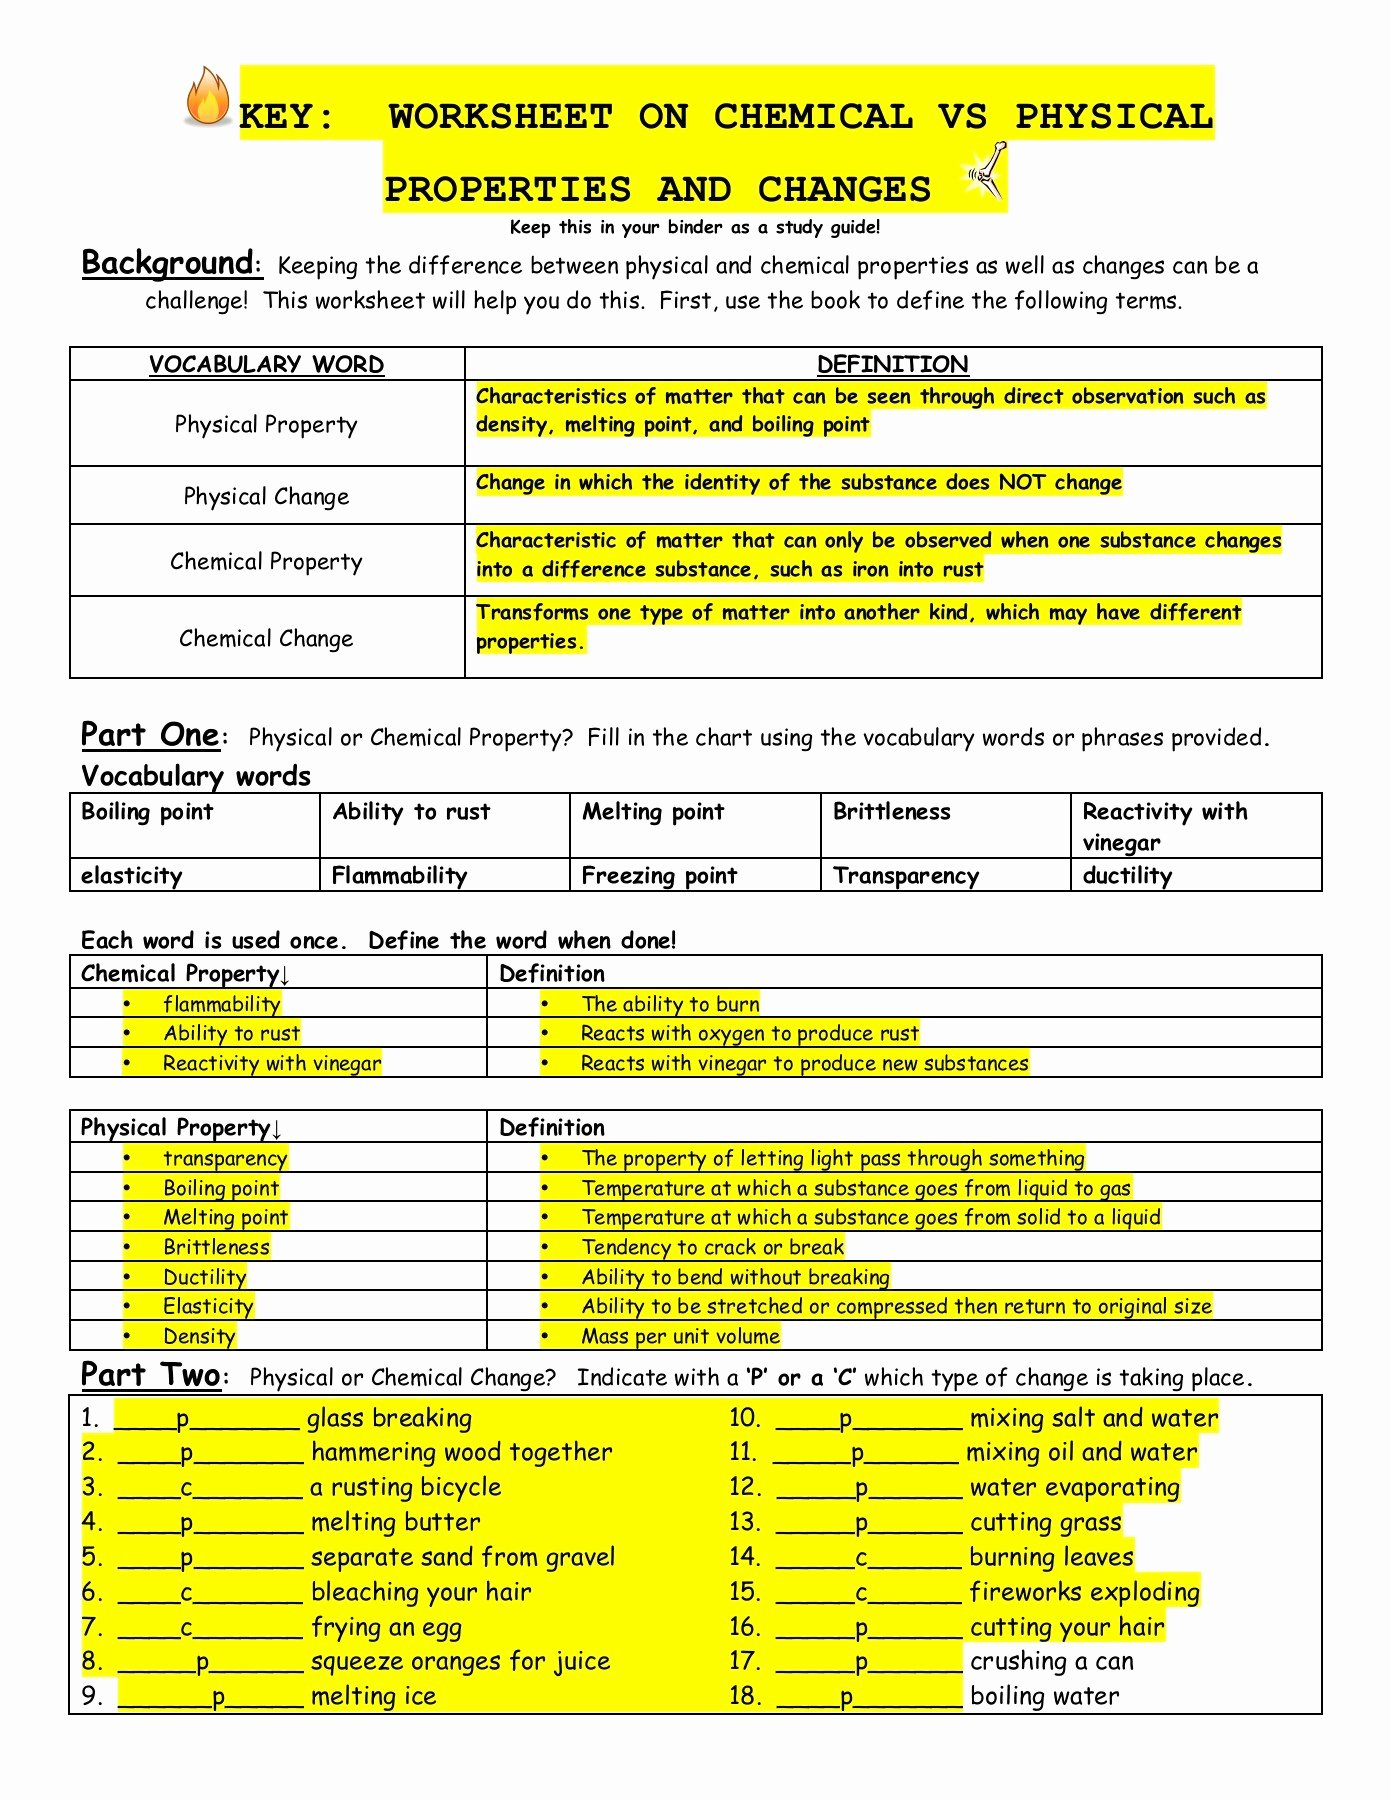 Physical and Chemical Properties Worksheet Inspirational Worksheet On Chemical Vs Physical Properties and Changes